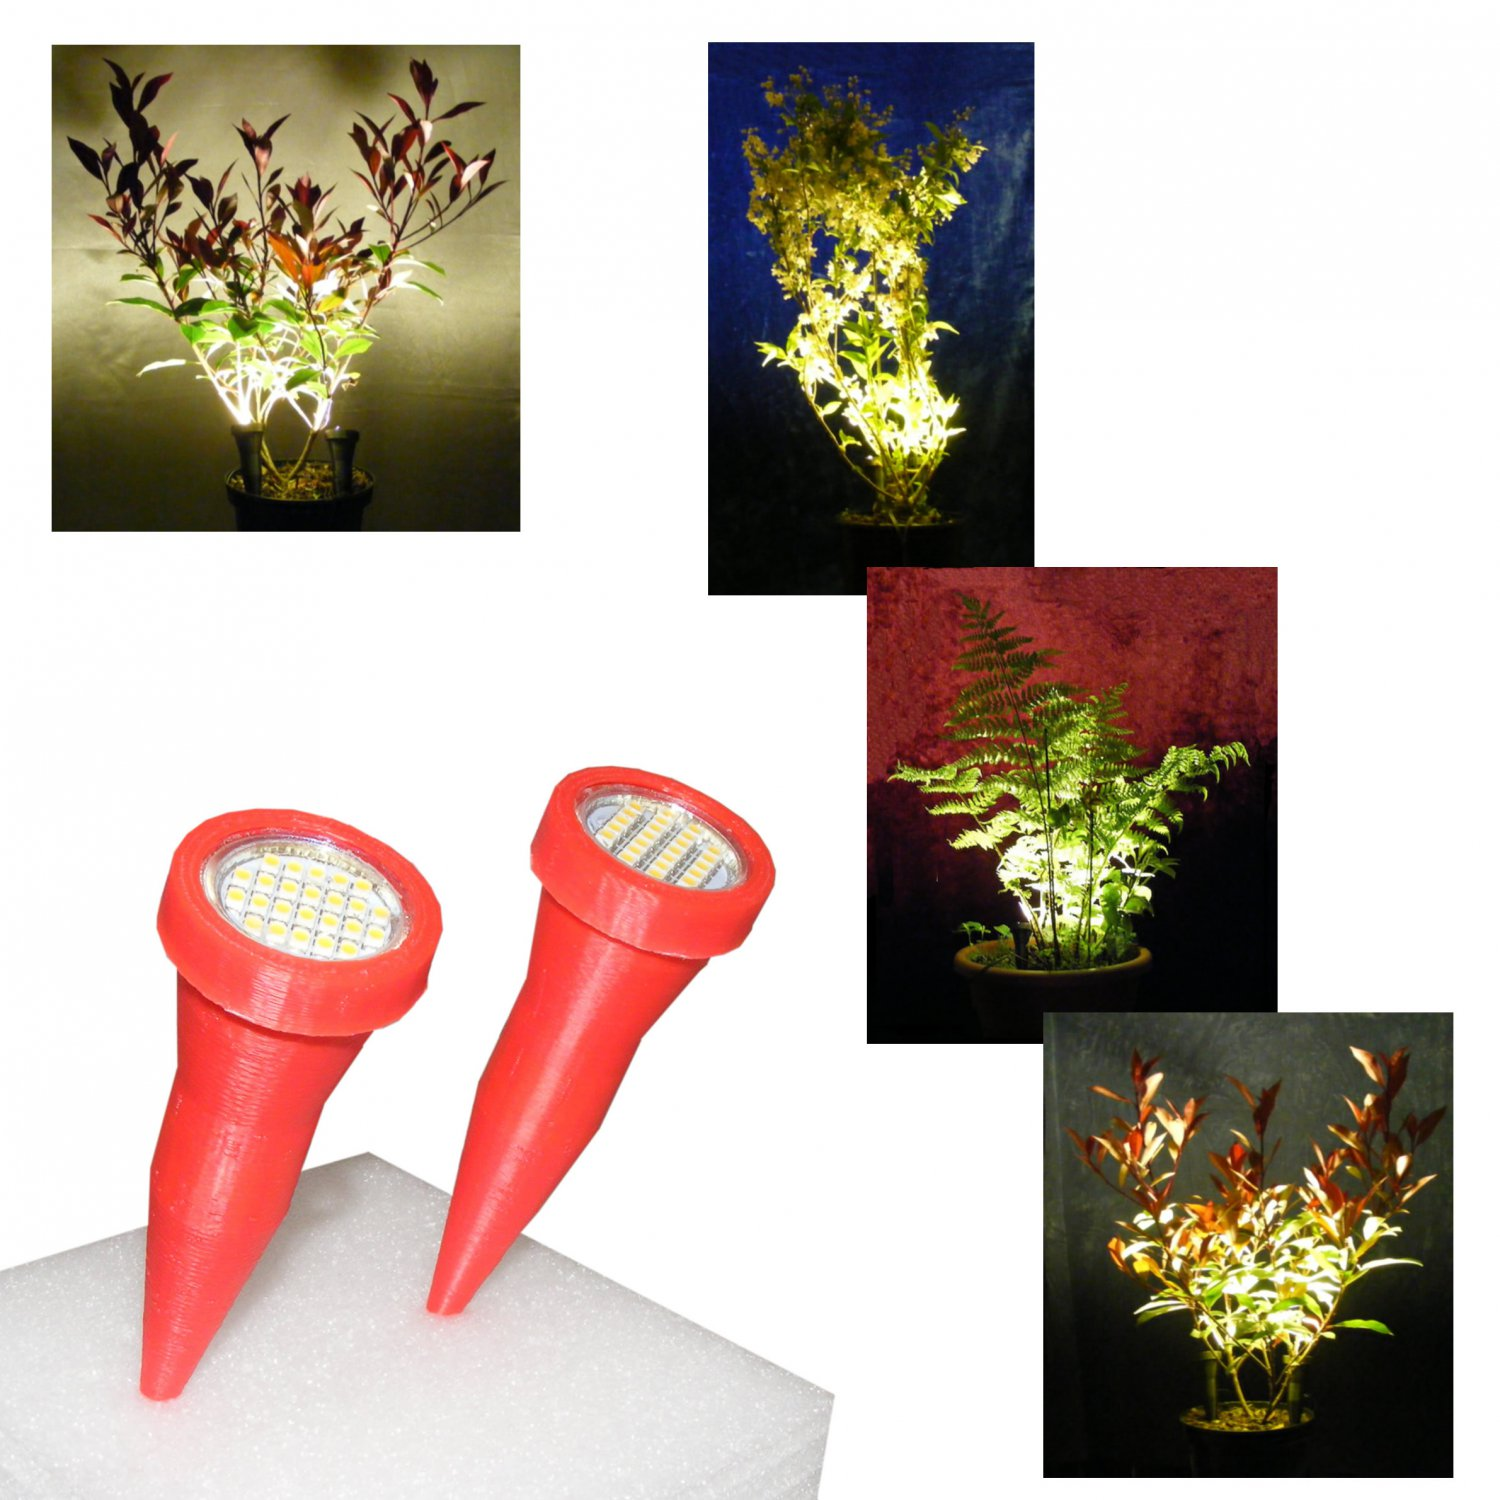 Plant Pot Uplights / Uplighters / Spike Lights in Pink with Mains Adapter - Price reduced to clear